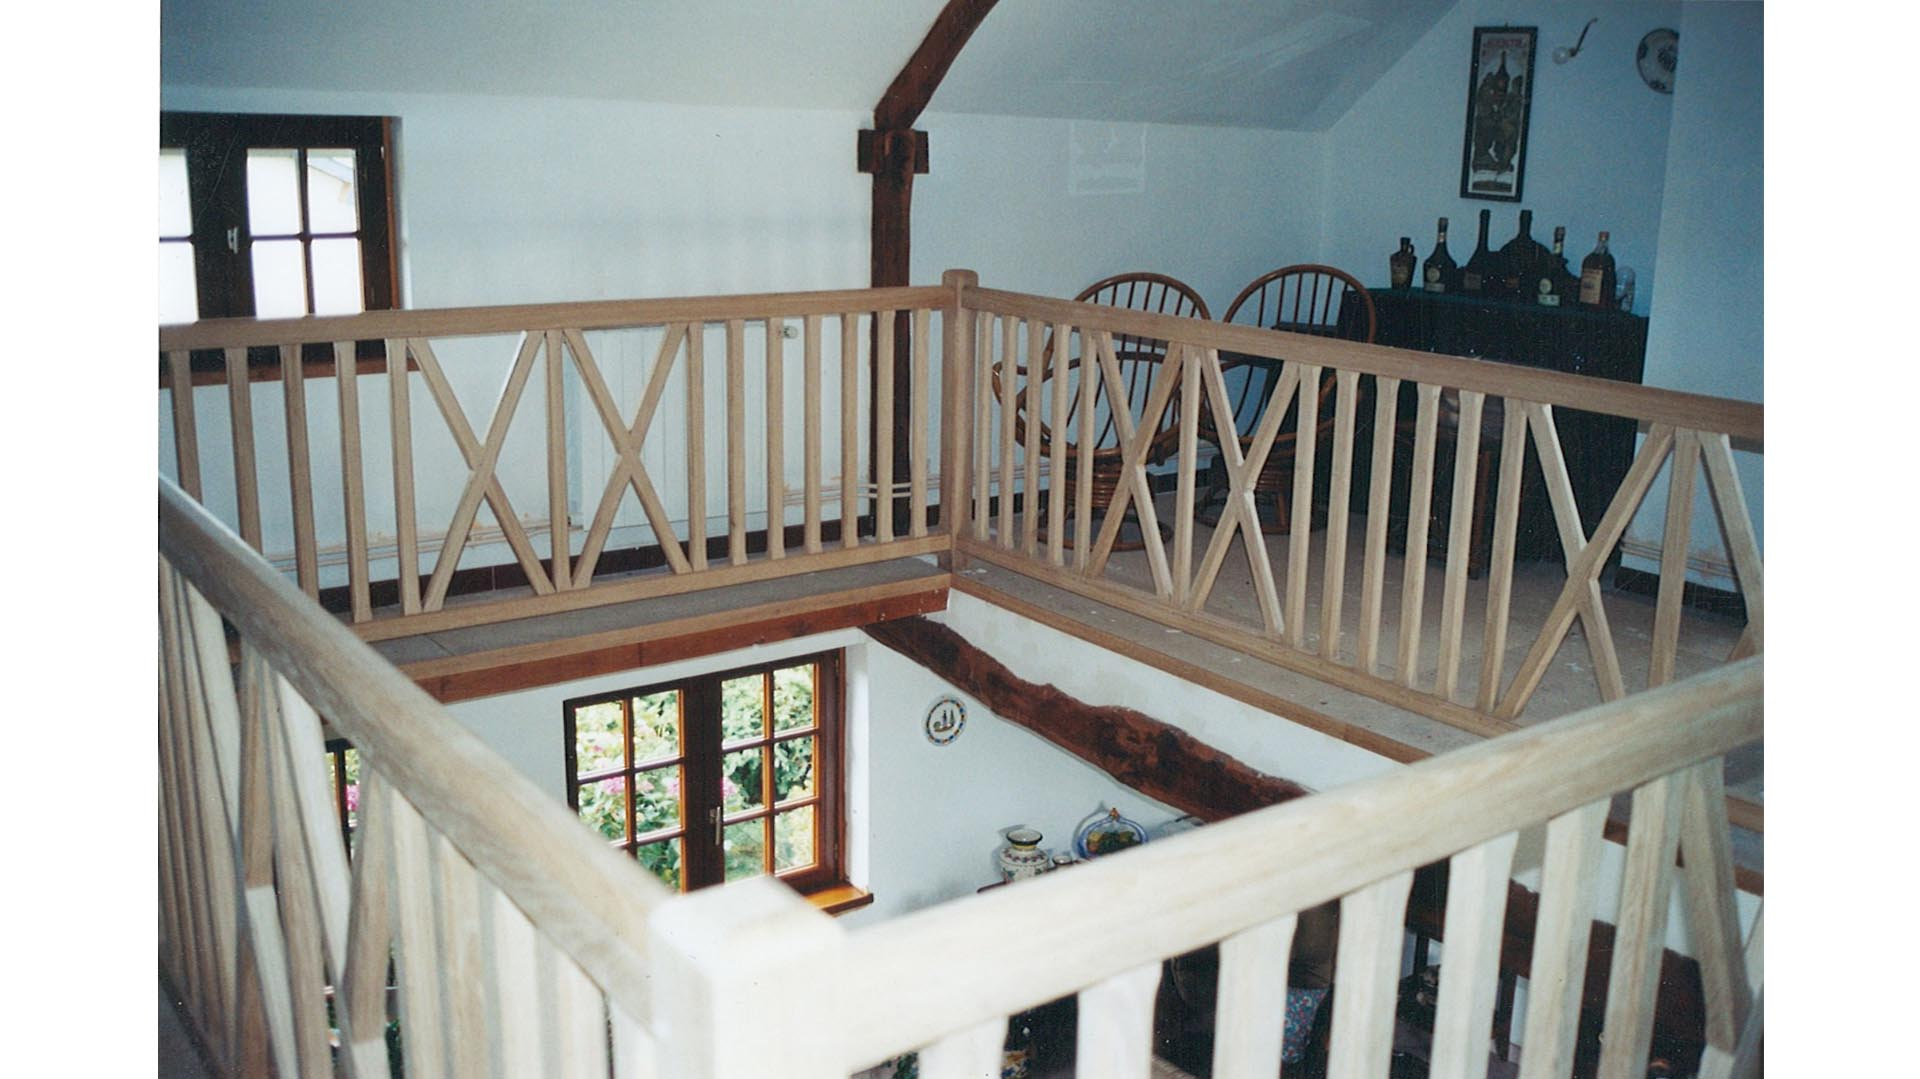 menuiserie orbec fabrication escalier bois